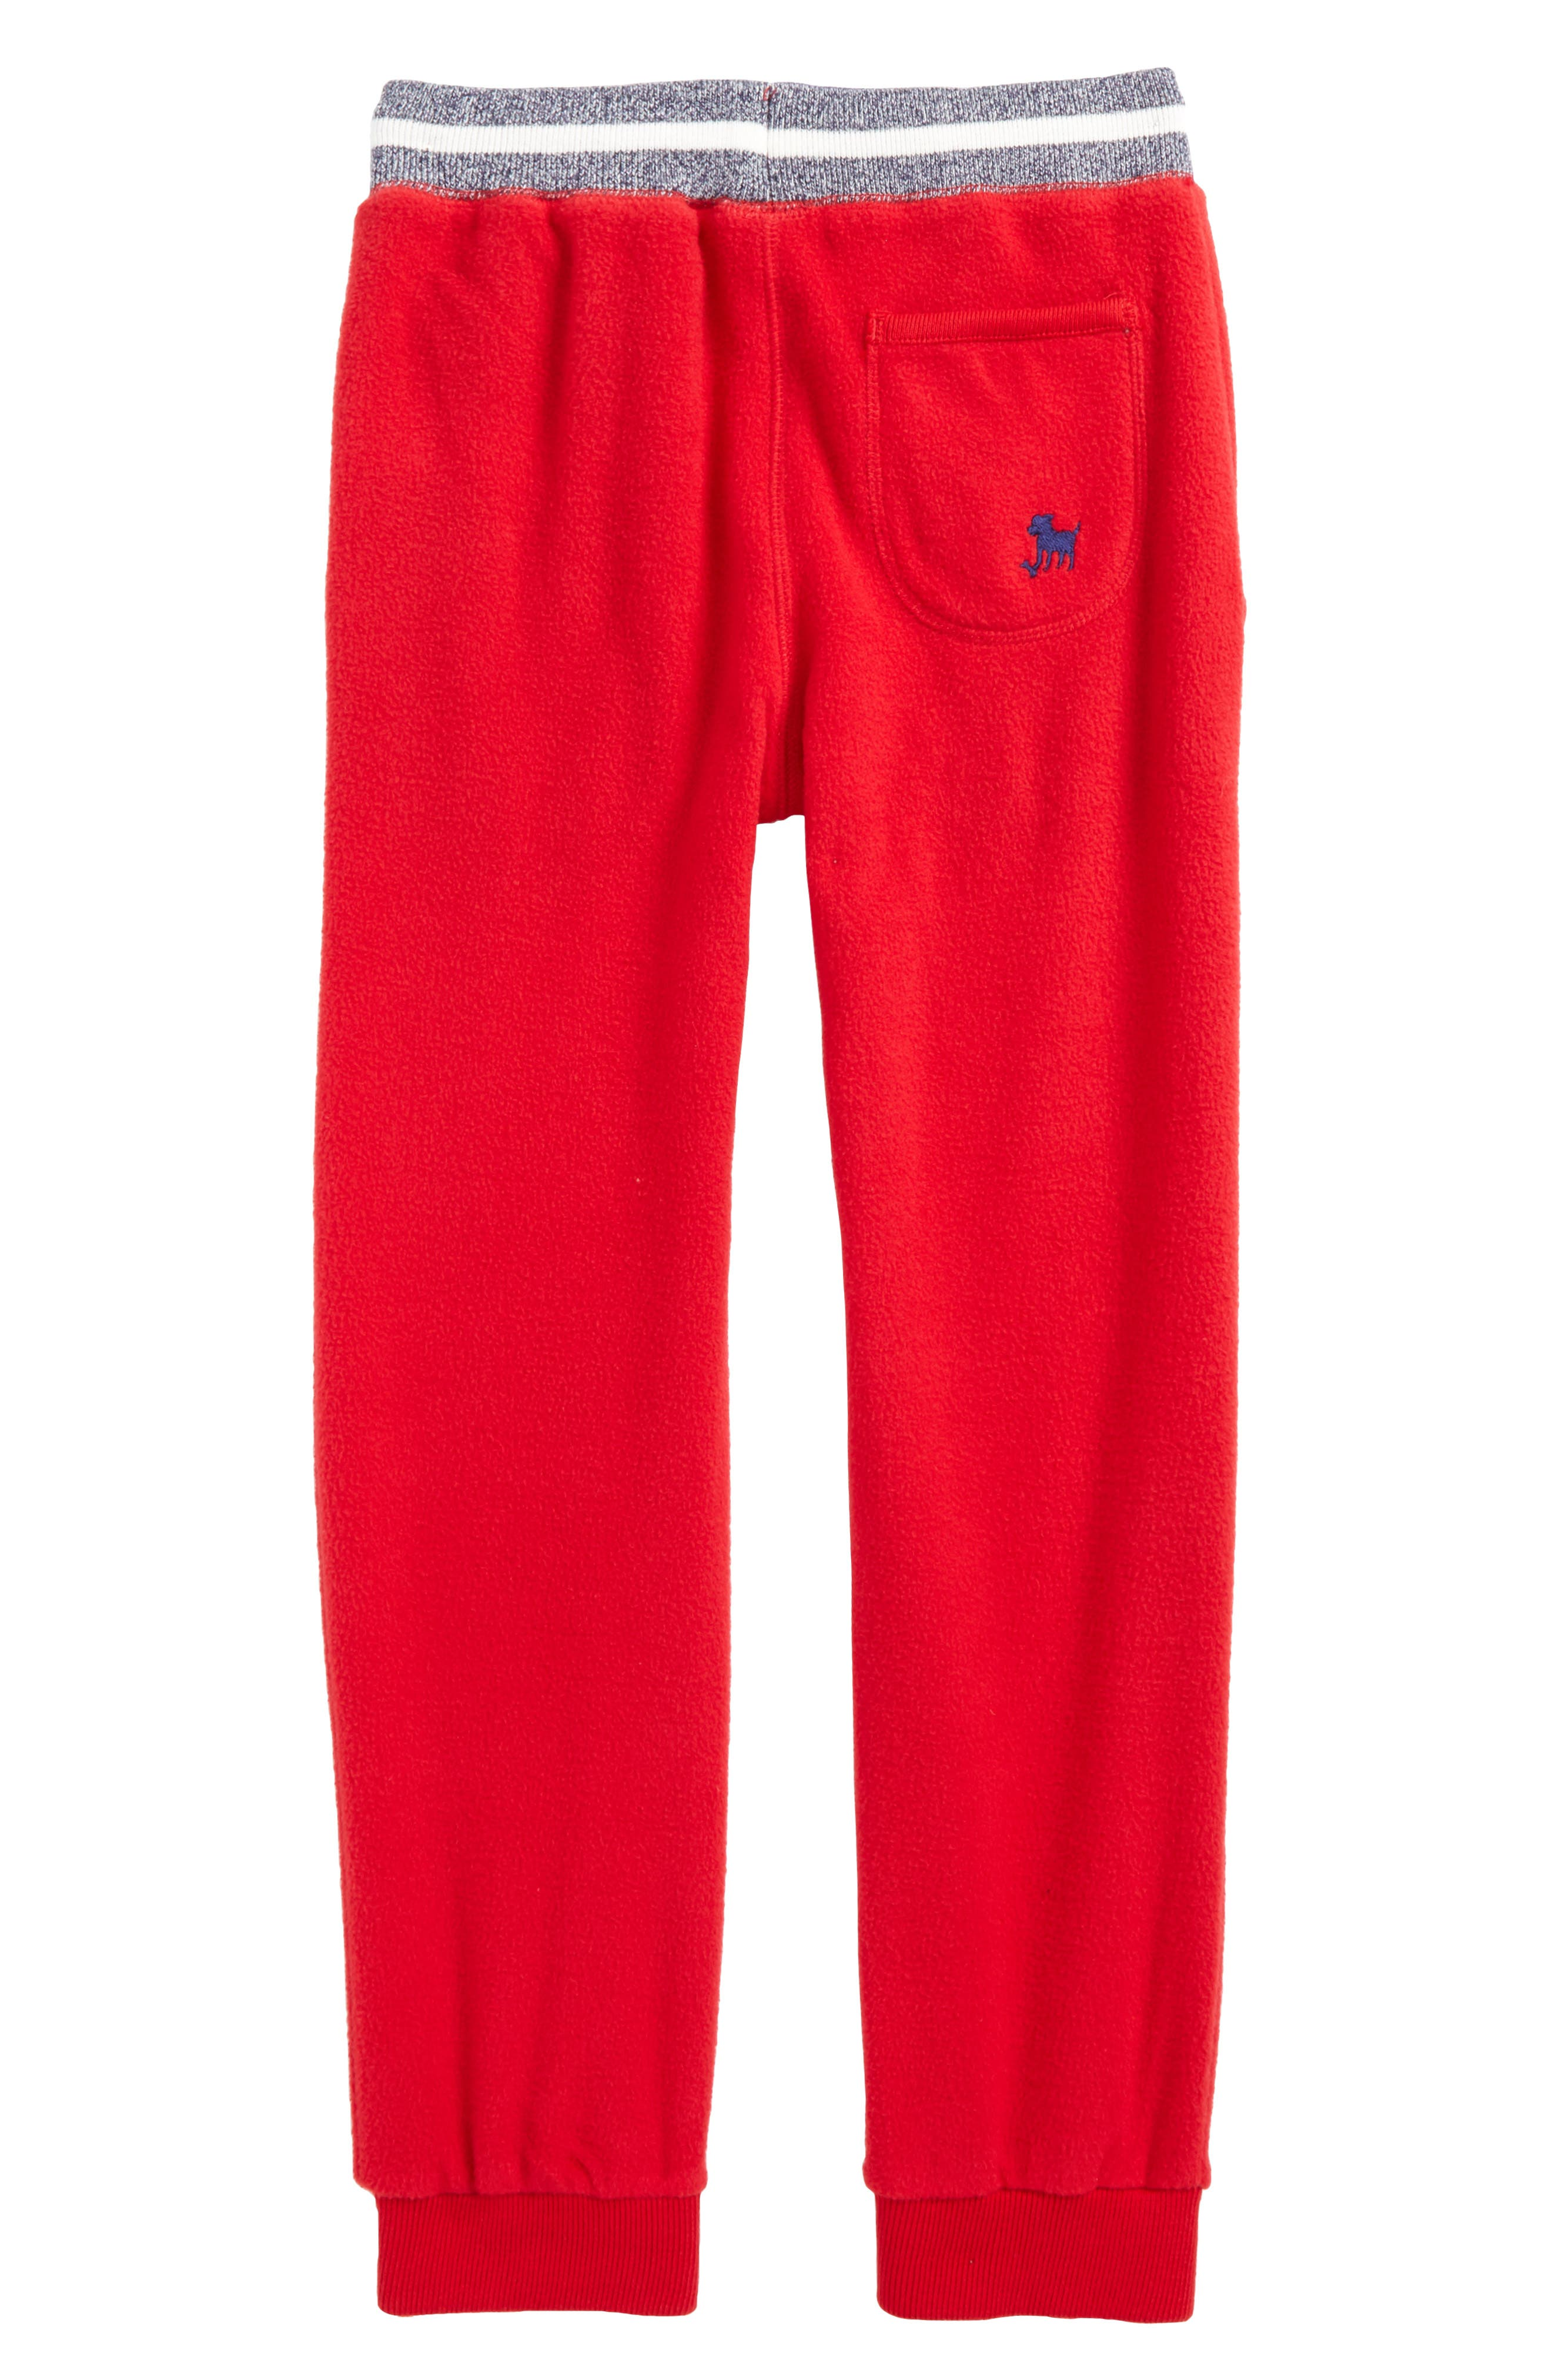 Alternate Image 2  - Mini Boden Microfleece Jogger Pants (Toddler Boys, Little Boys & Big Boys)